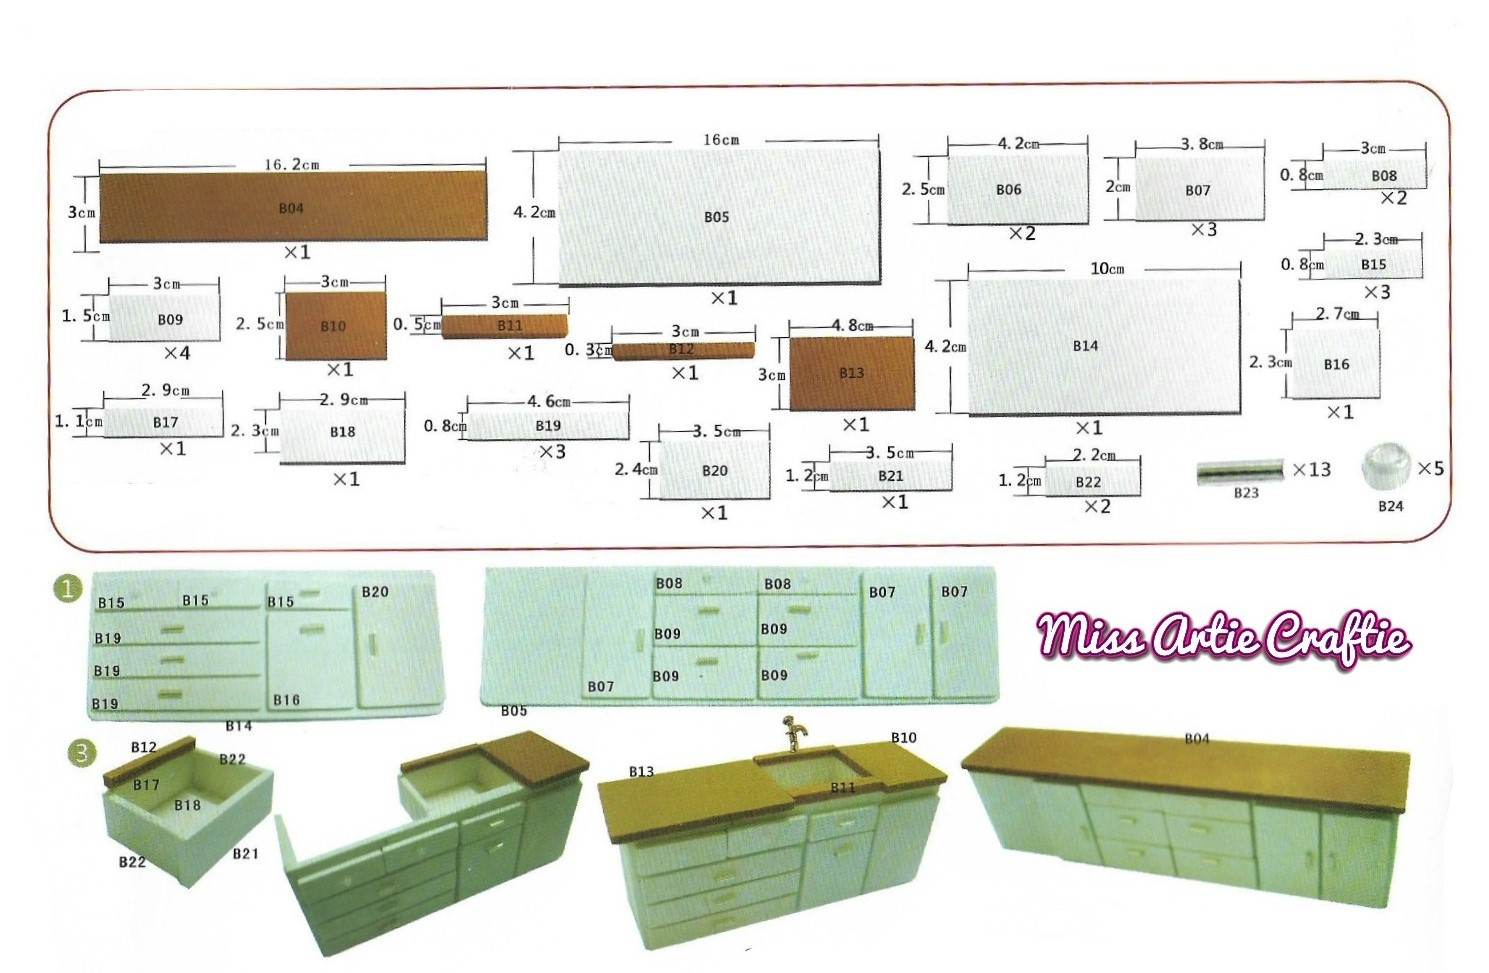 Miss Artie Craftie Miniature Dollhouse Kitchen Cabinets Template